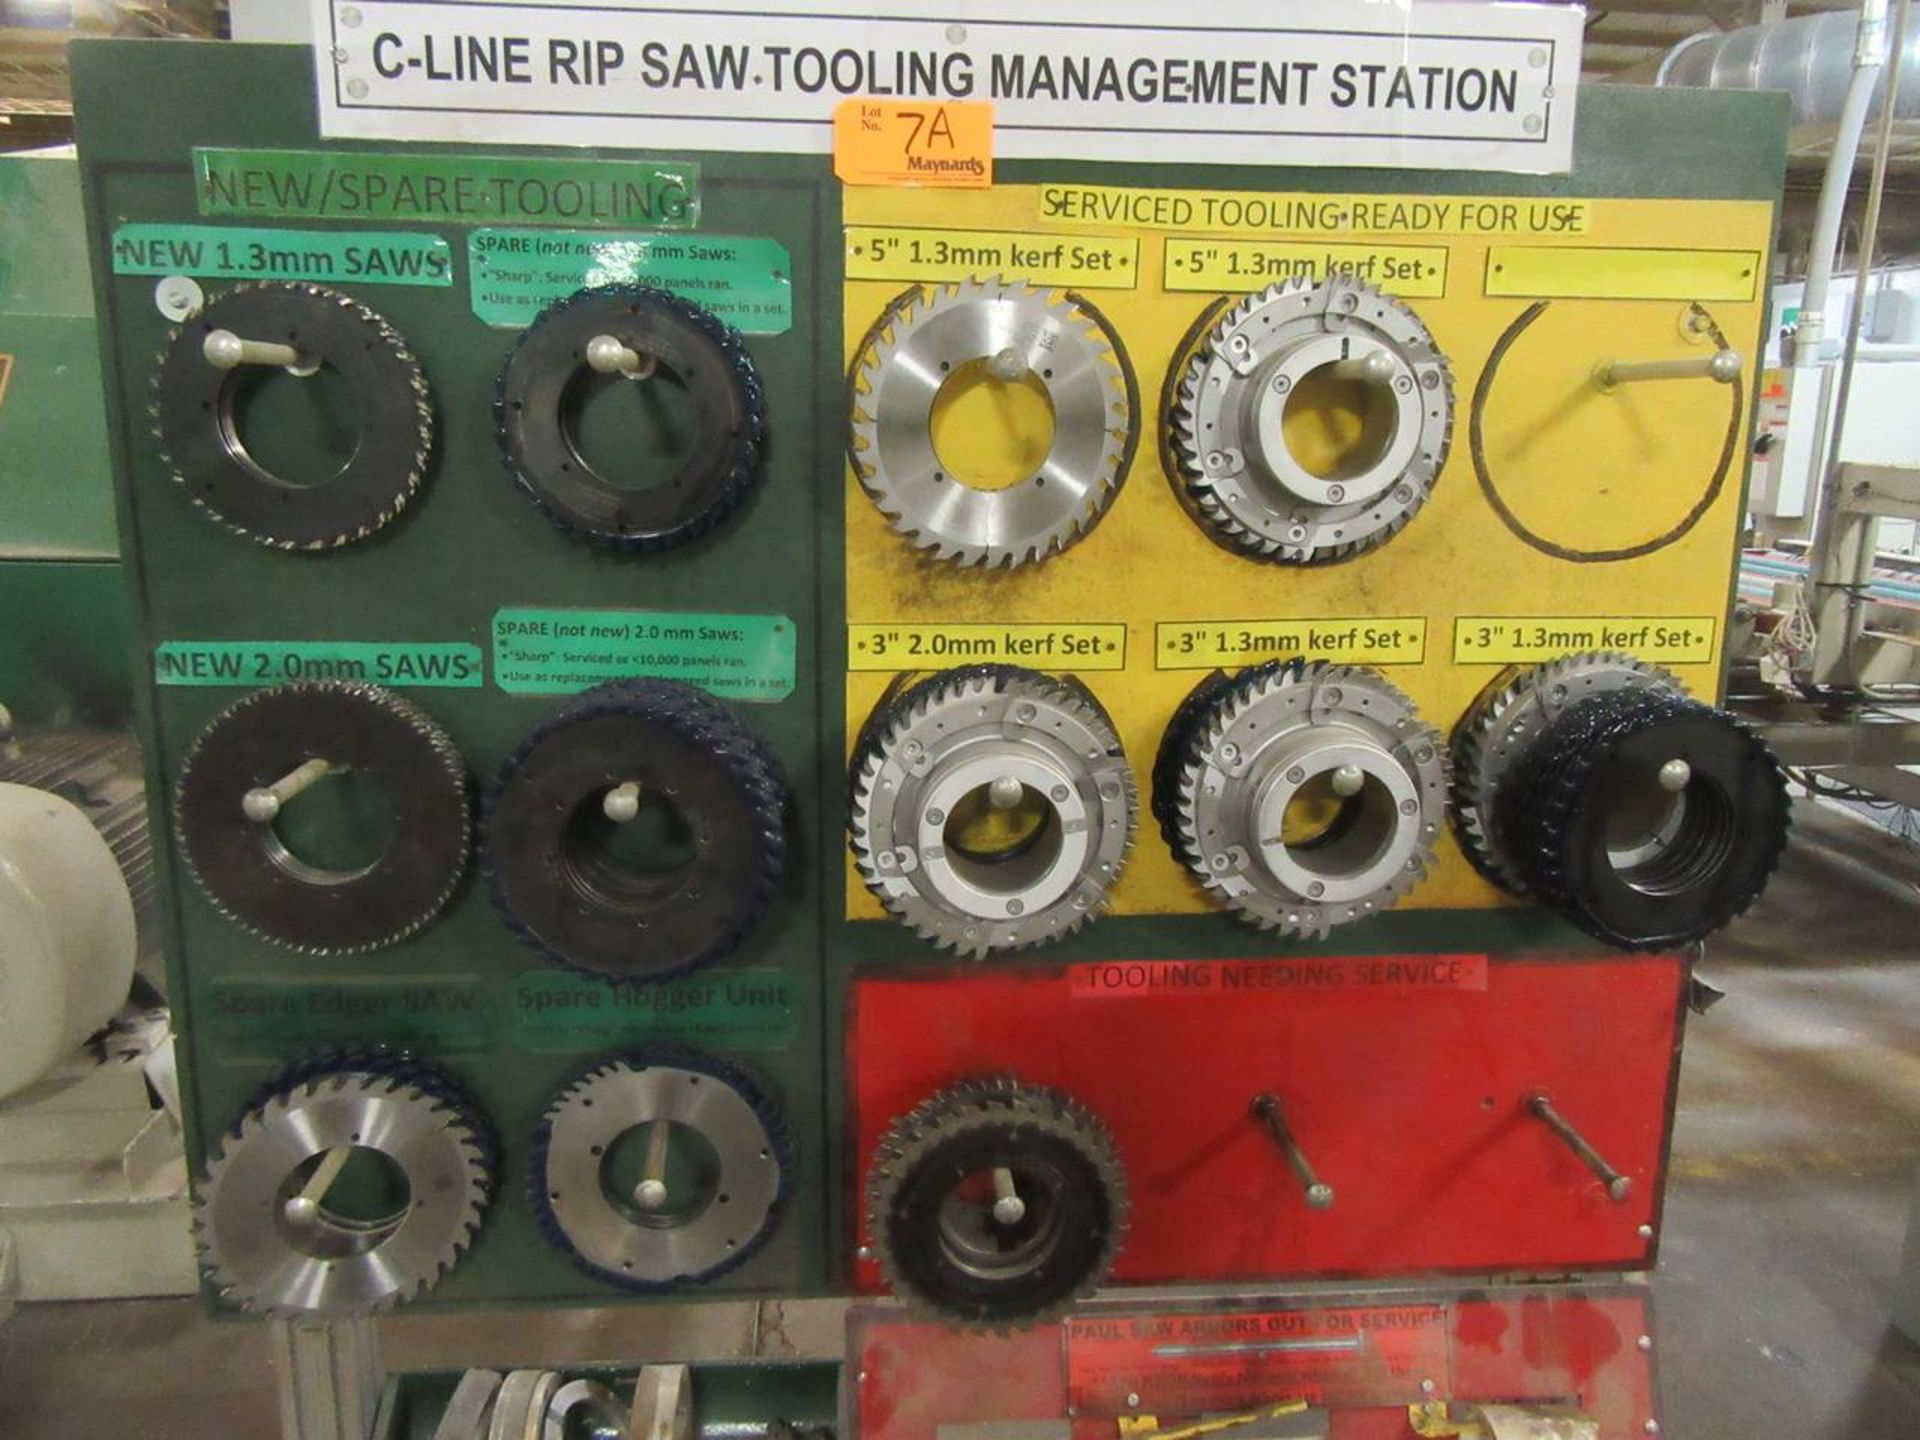 Lot 7A - Lot of Rip Saw Tooling